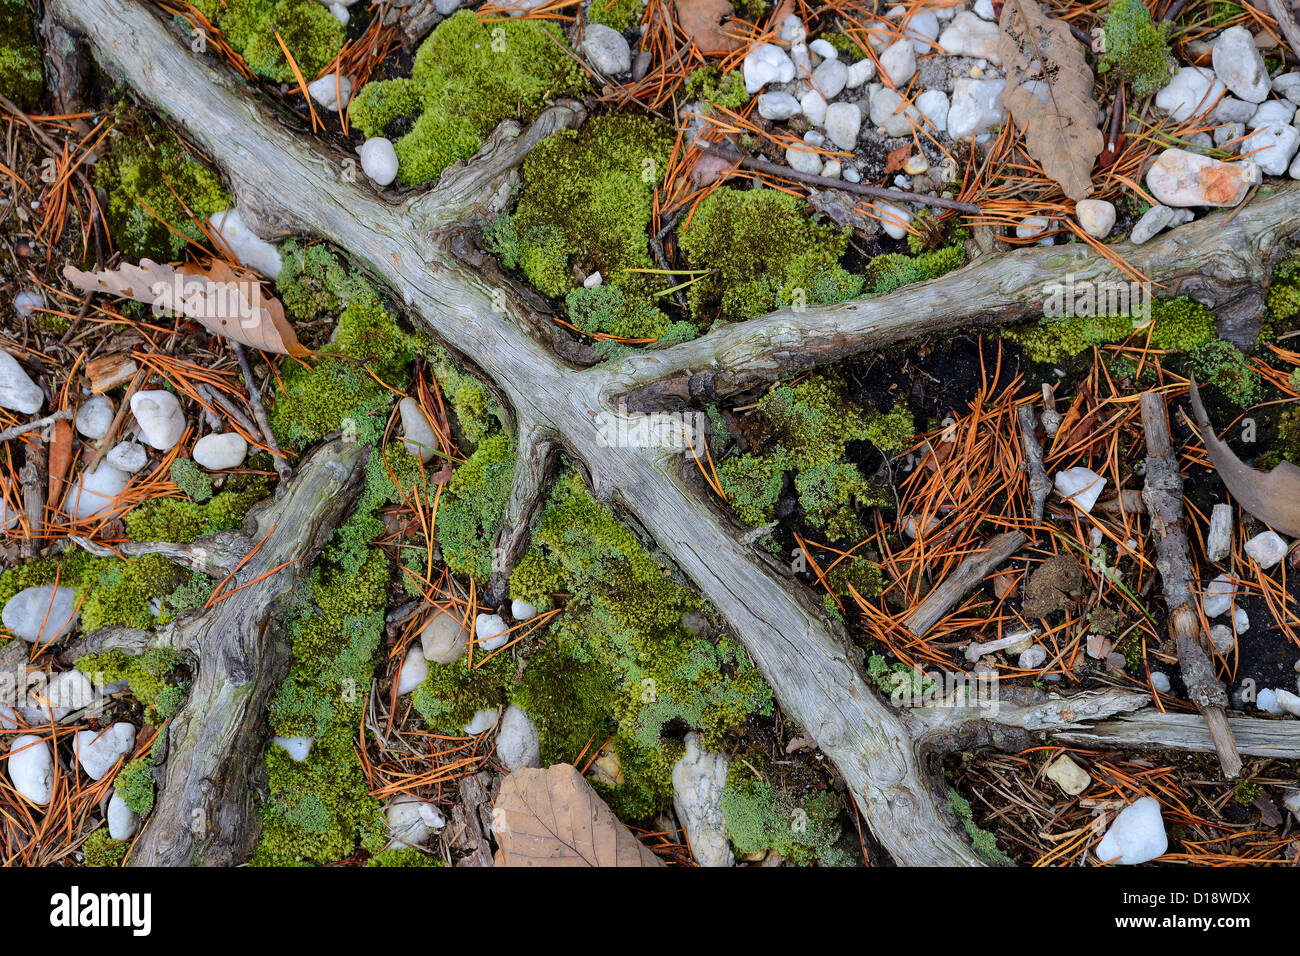 Tree Root & Moss, Forest Ground Detail - Stock Image